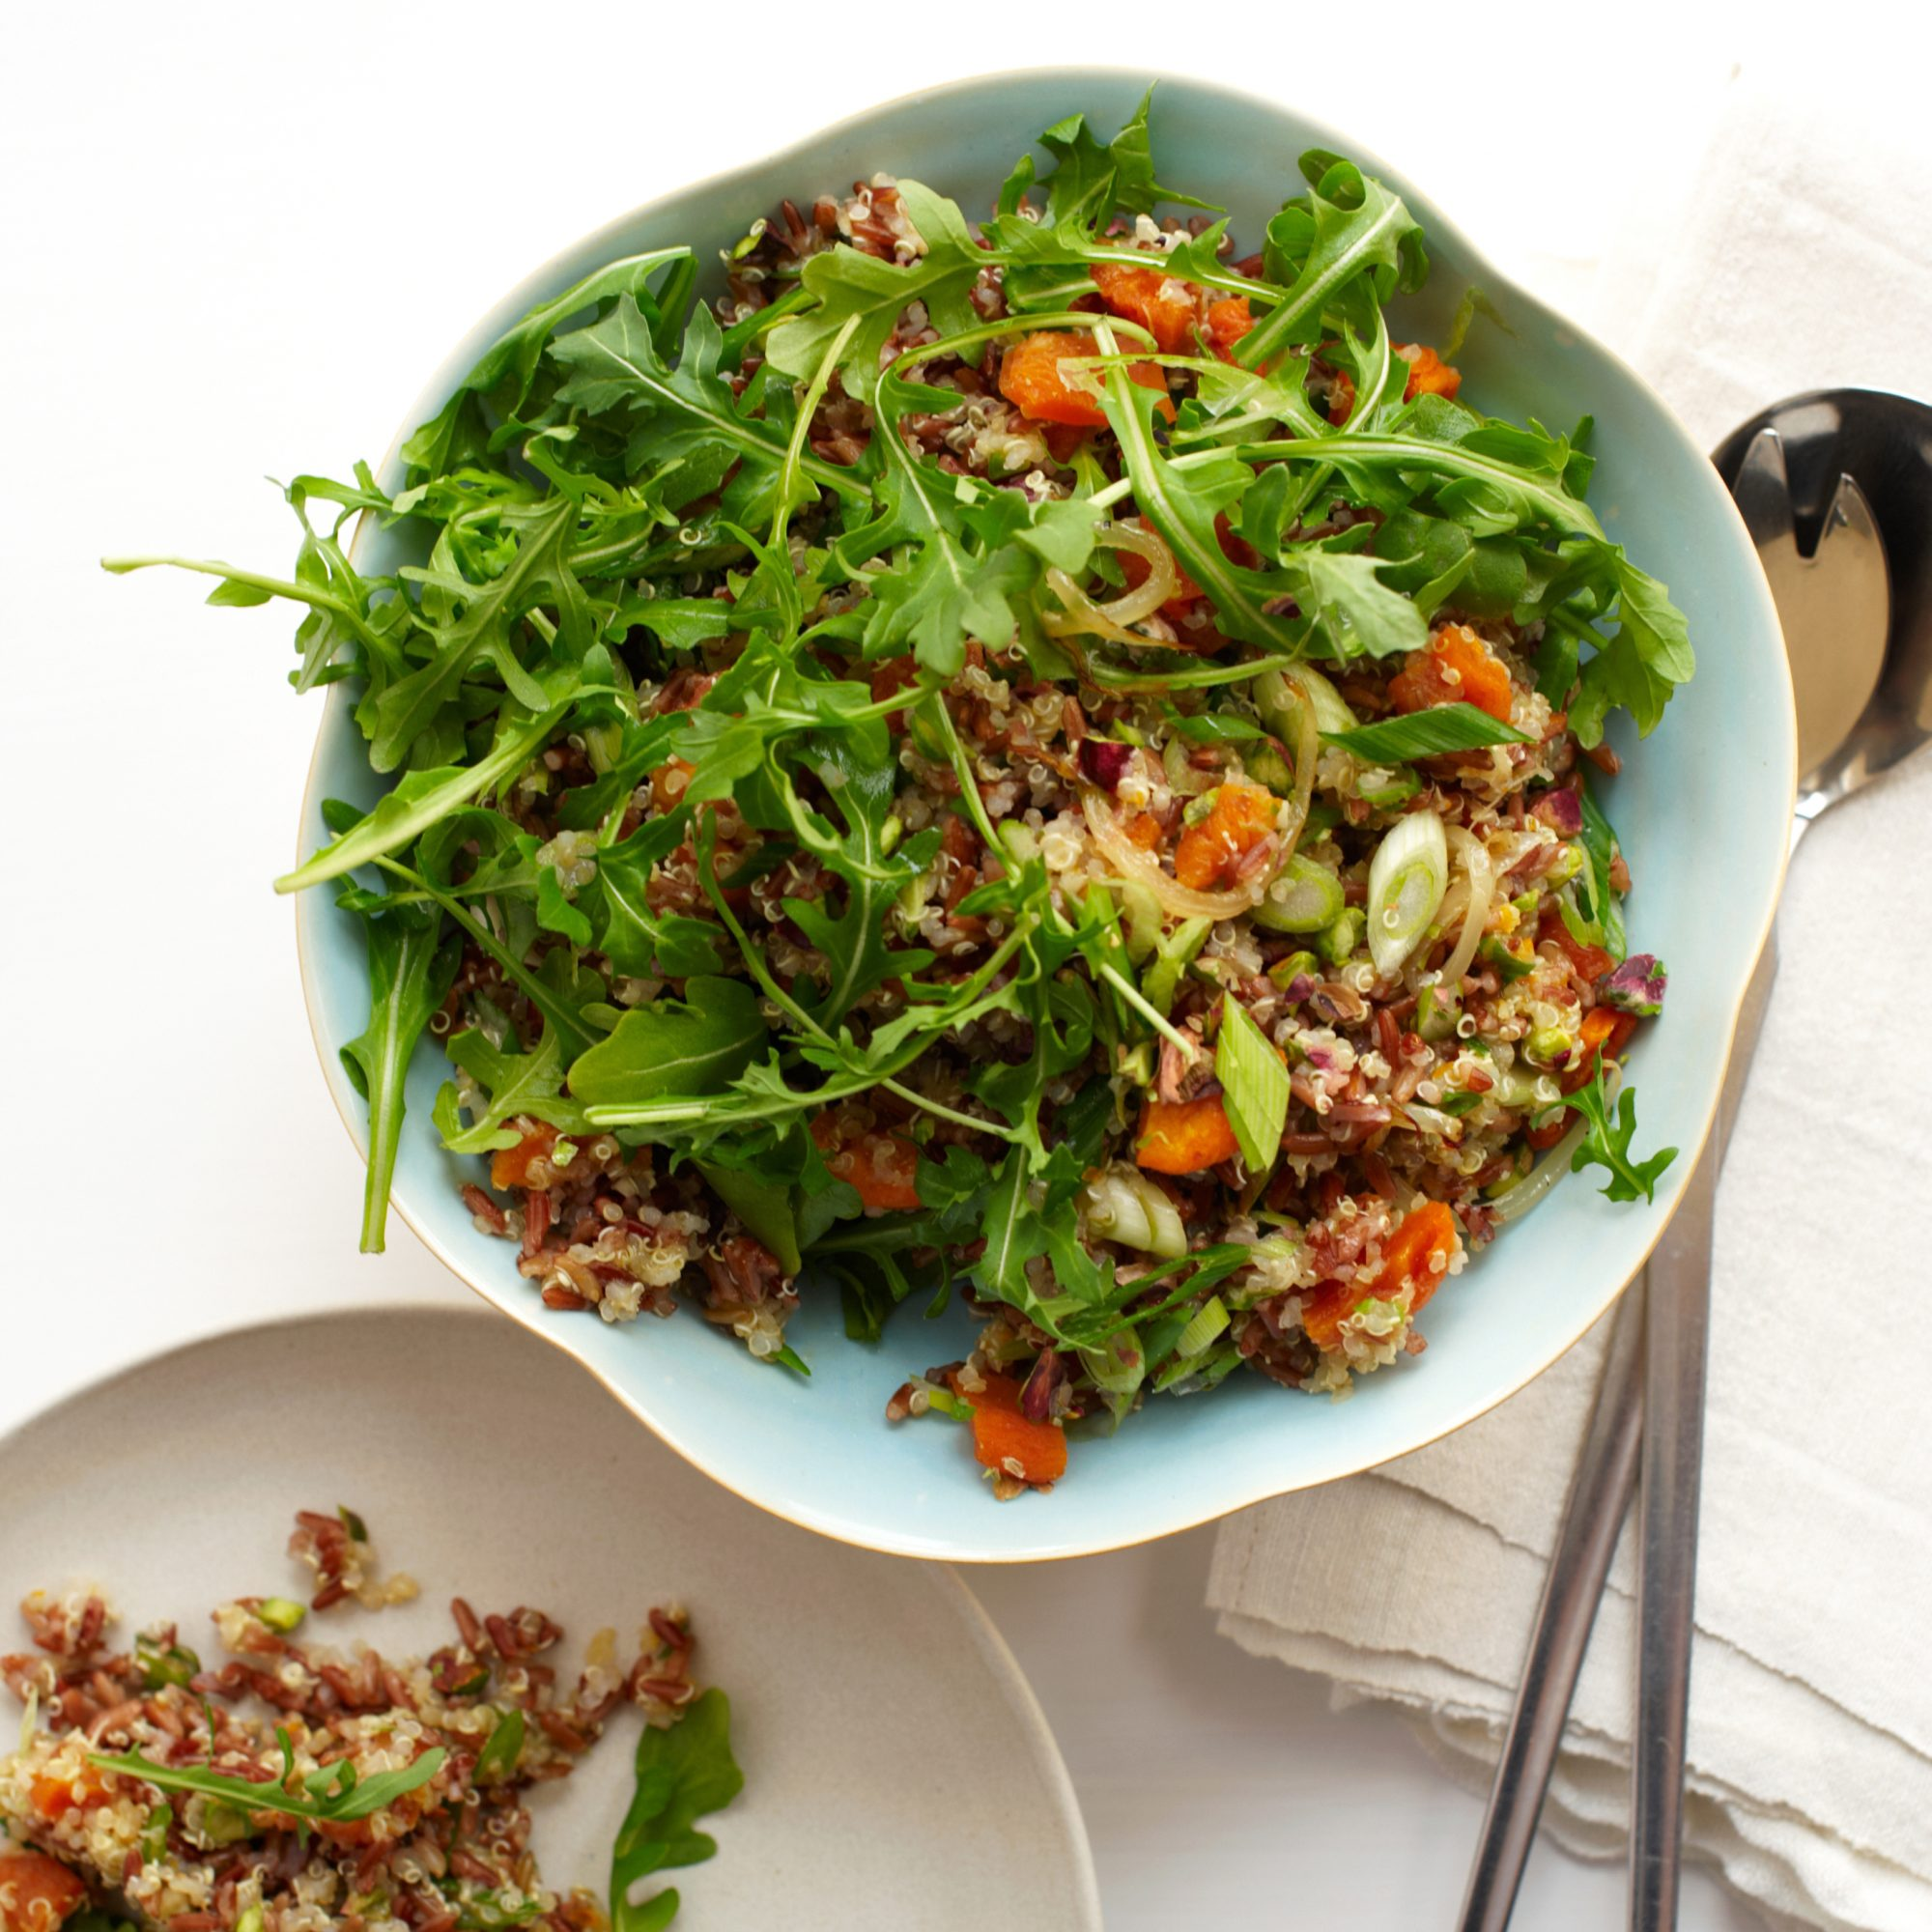 201105-r-red-rice-quinoa-salad.jpg